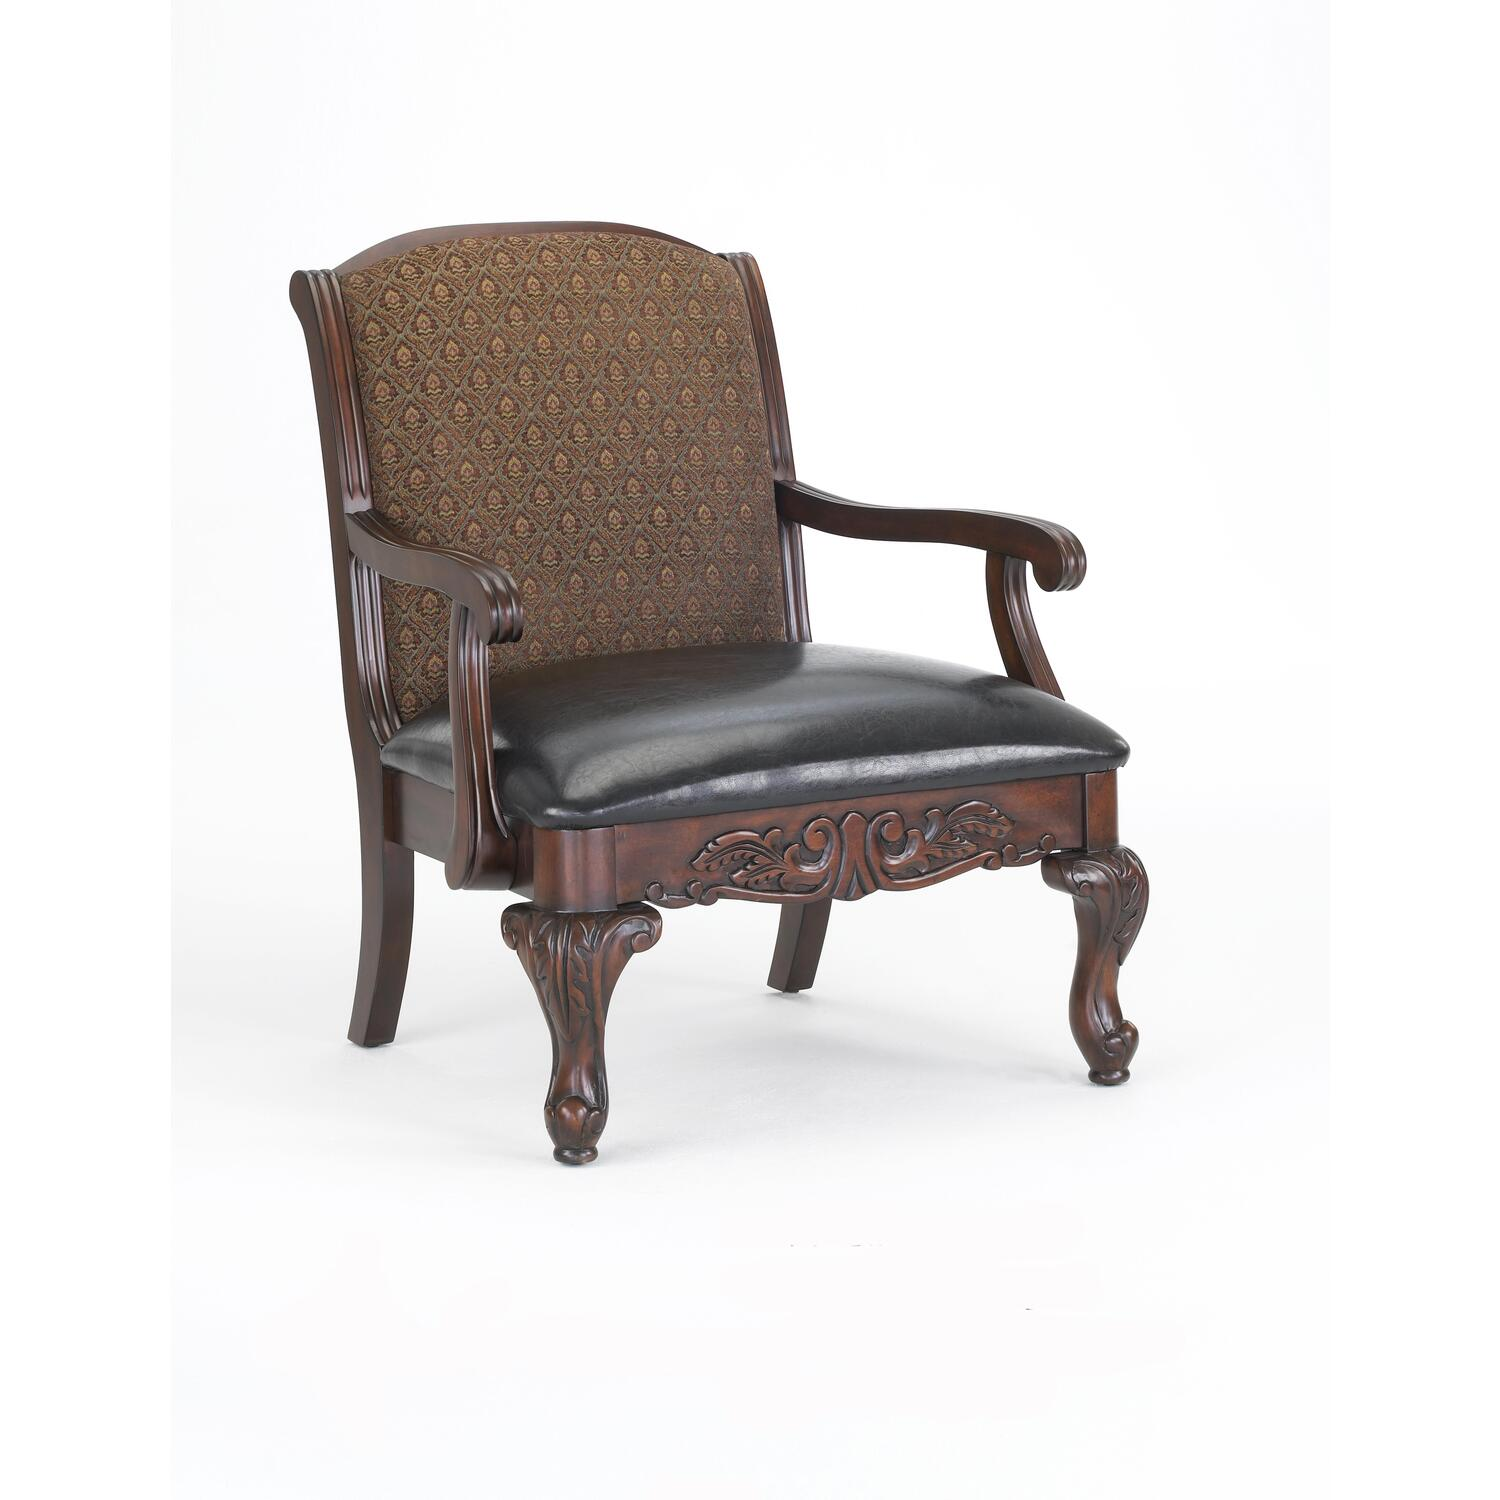 Traditional accent chairs - Liza Traditional Accent Chair 3177liza